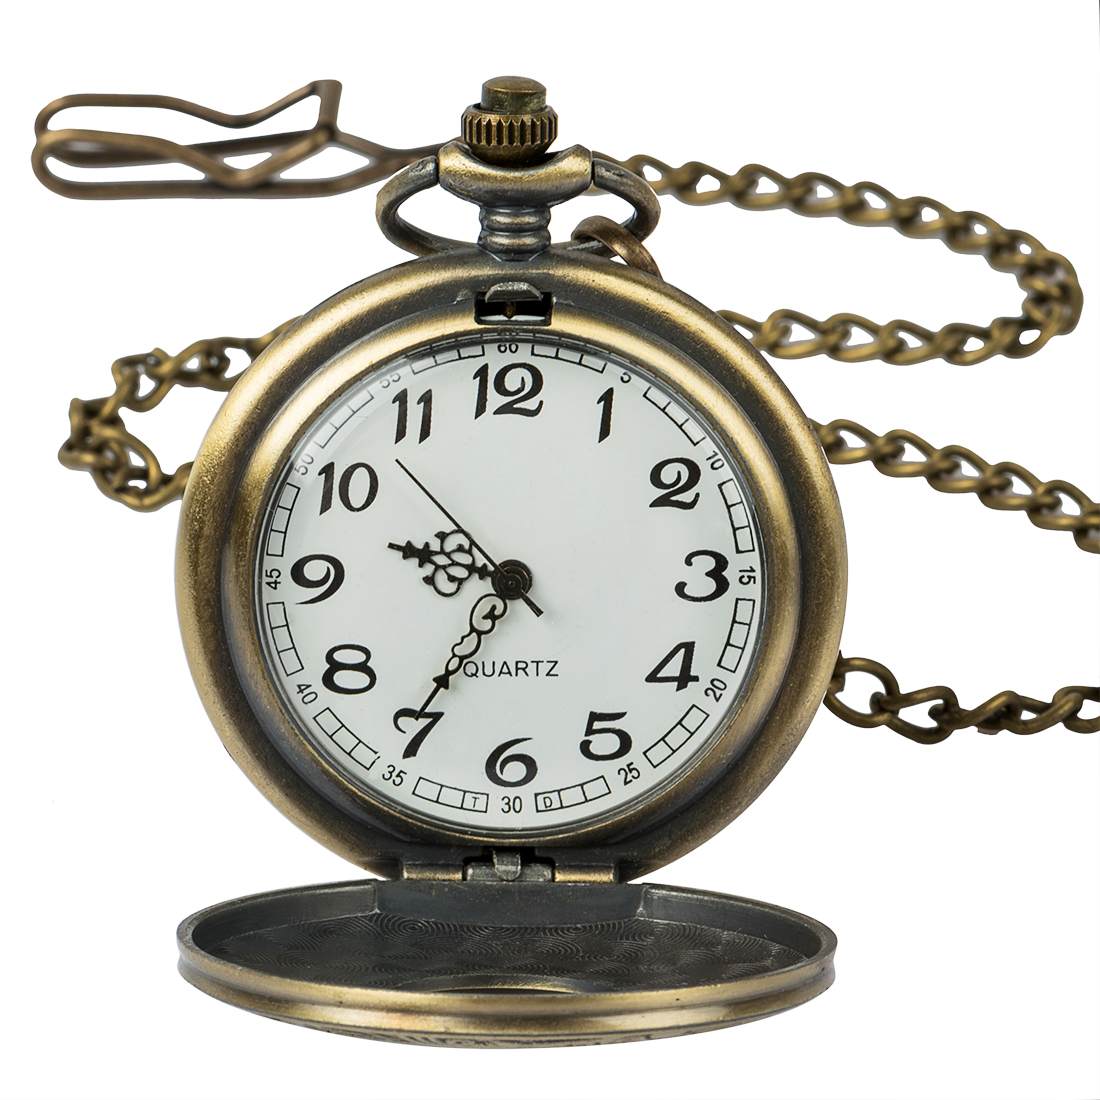 Buy Vintage Steampunk Bronze Quartz Pocket Watch Roman Numerals Clock Time in the pocket Men Women's Necklace Pendant gift Relogio for only 4.86 USD